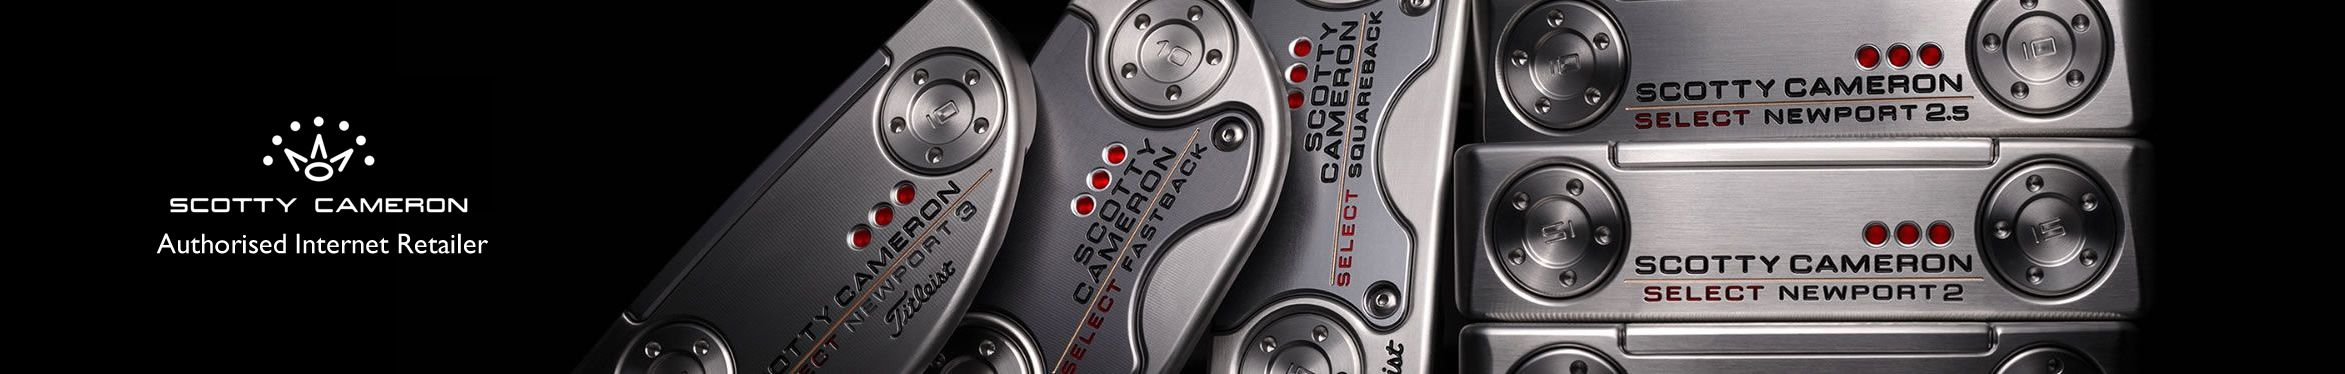 Scotty Cameron Golf